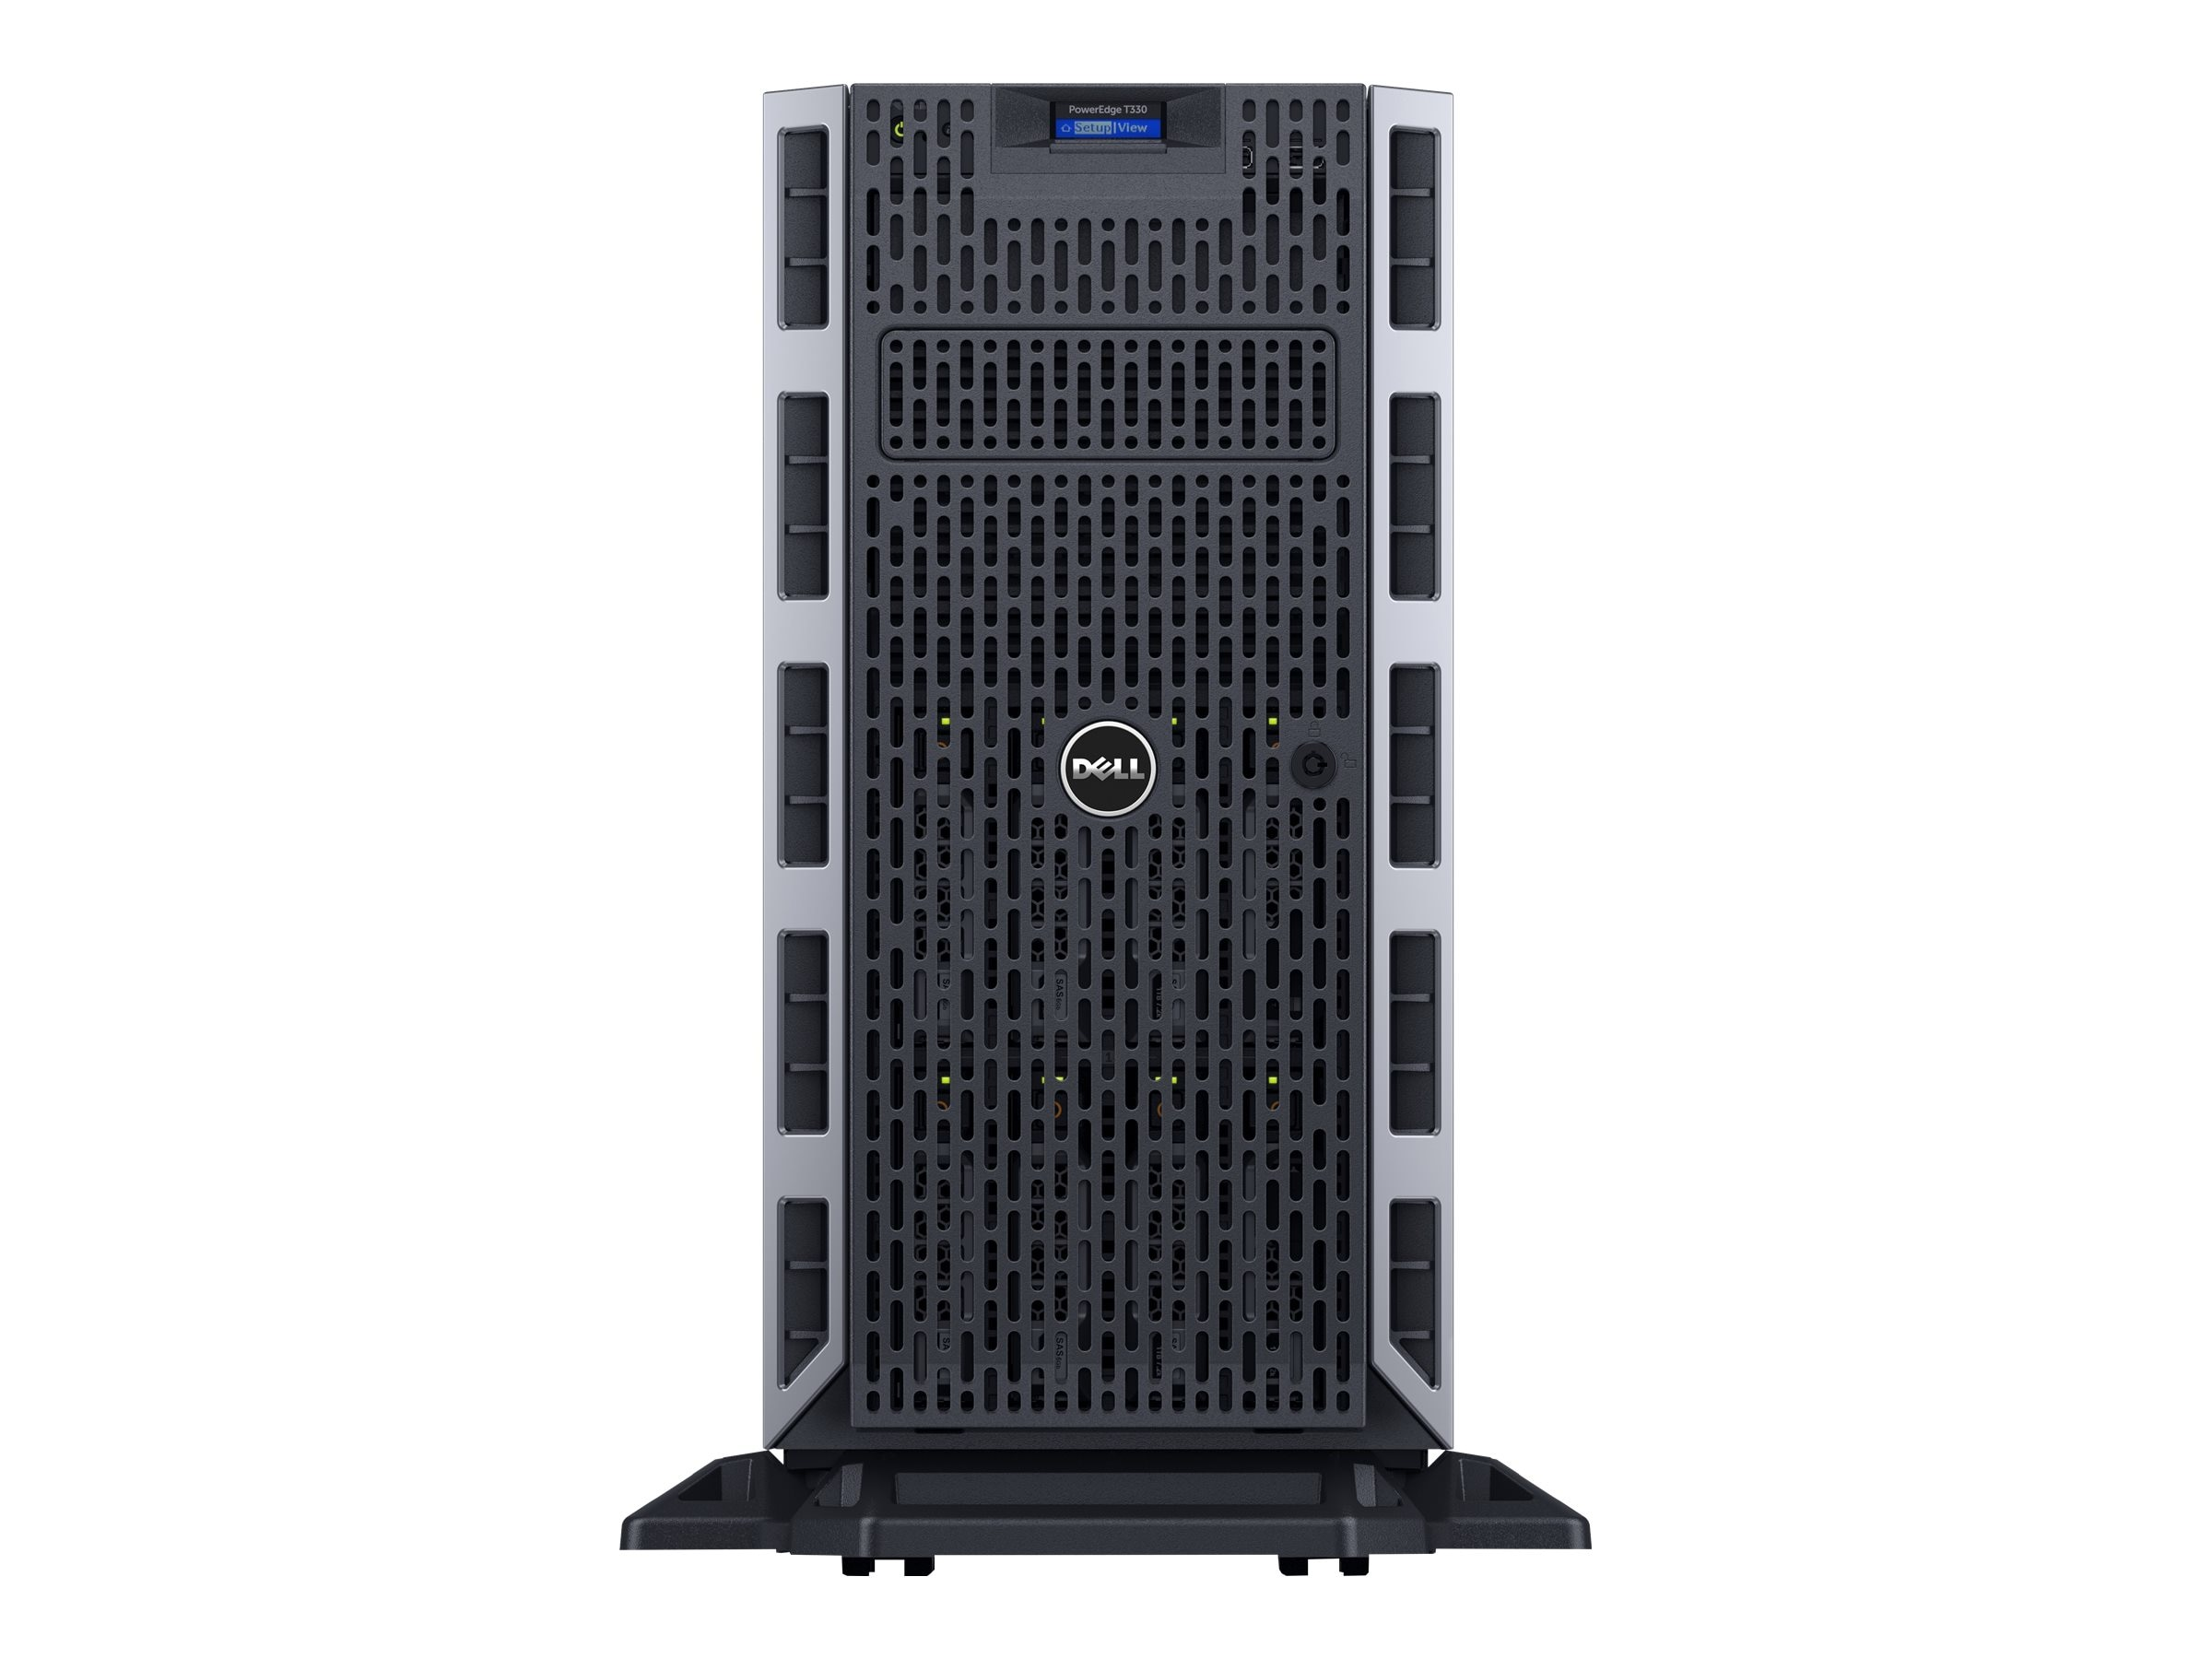 Dell PowerEdge T330 Tower Xeon QC E3-1240 v5 3.5GHz 8GB 1x300GB SAS 4x3.5 HP Bays H330 2xGbE 495W, 463-7654